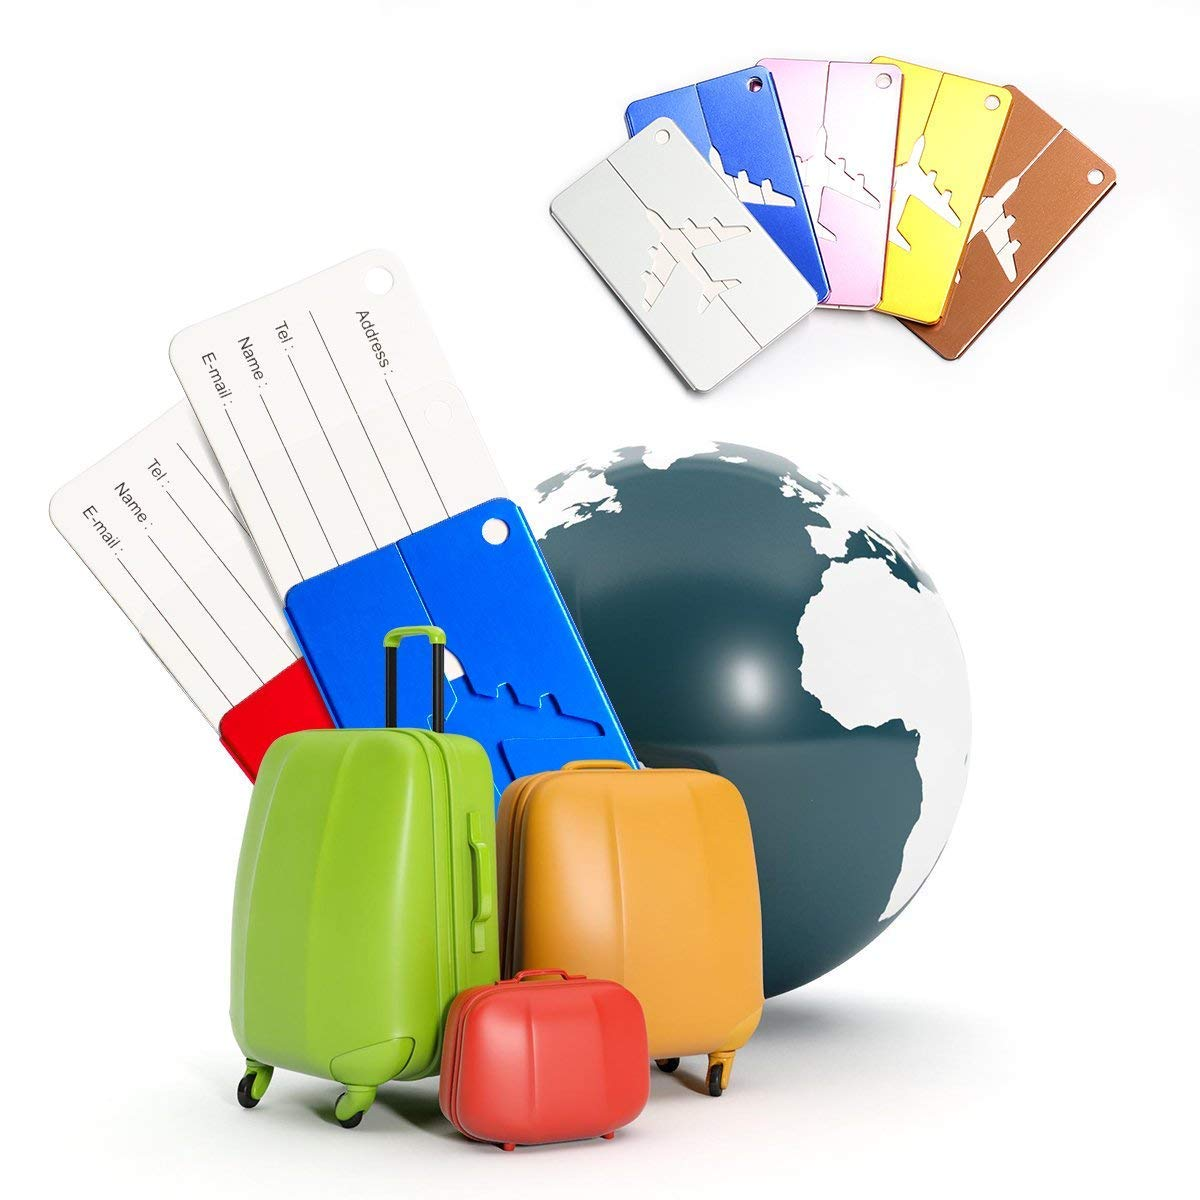 Febbya Luggage Tags Travel Luggage Baggage 7 Pack Bright Colors Tour Suitcase Baggage Handbag Labels Business Card Holder For Travel Bussiness Trip With Aluminum Strip